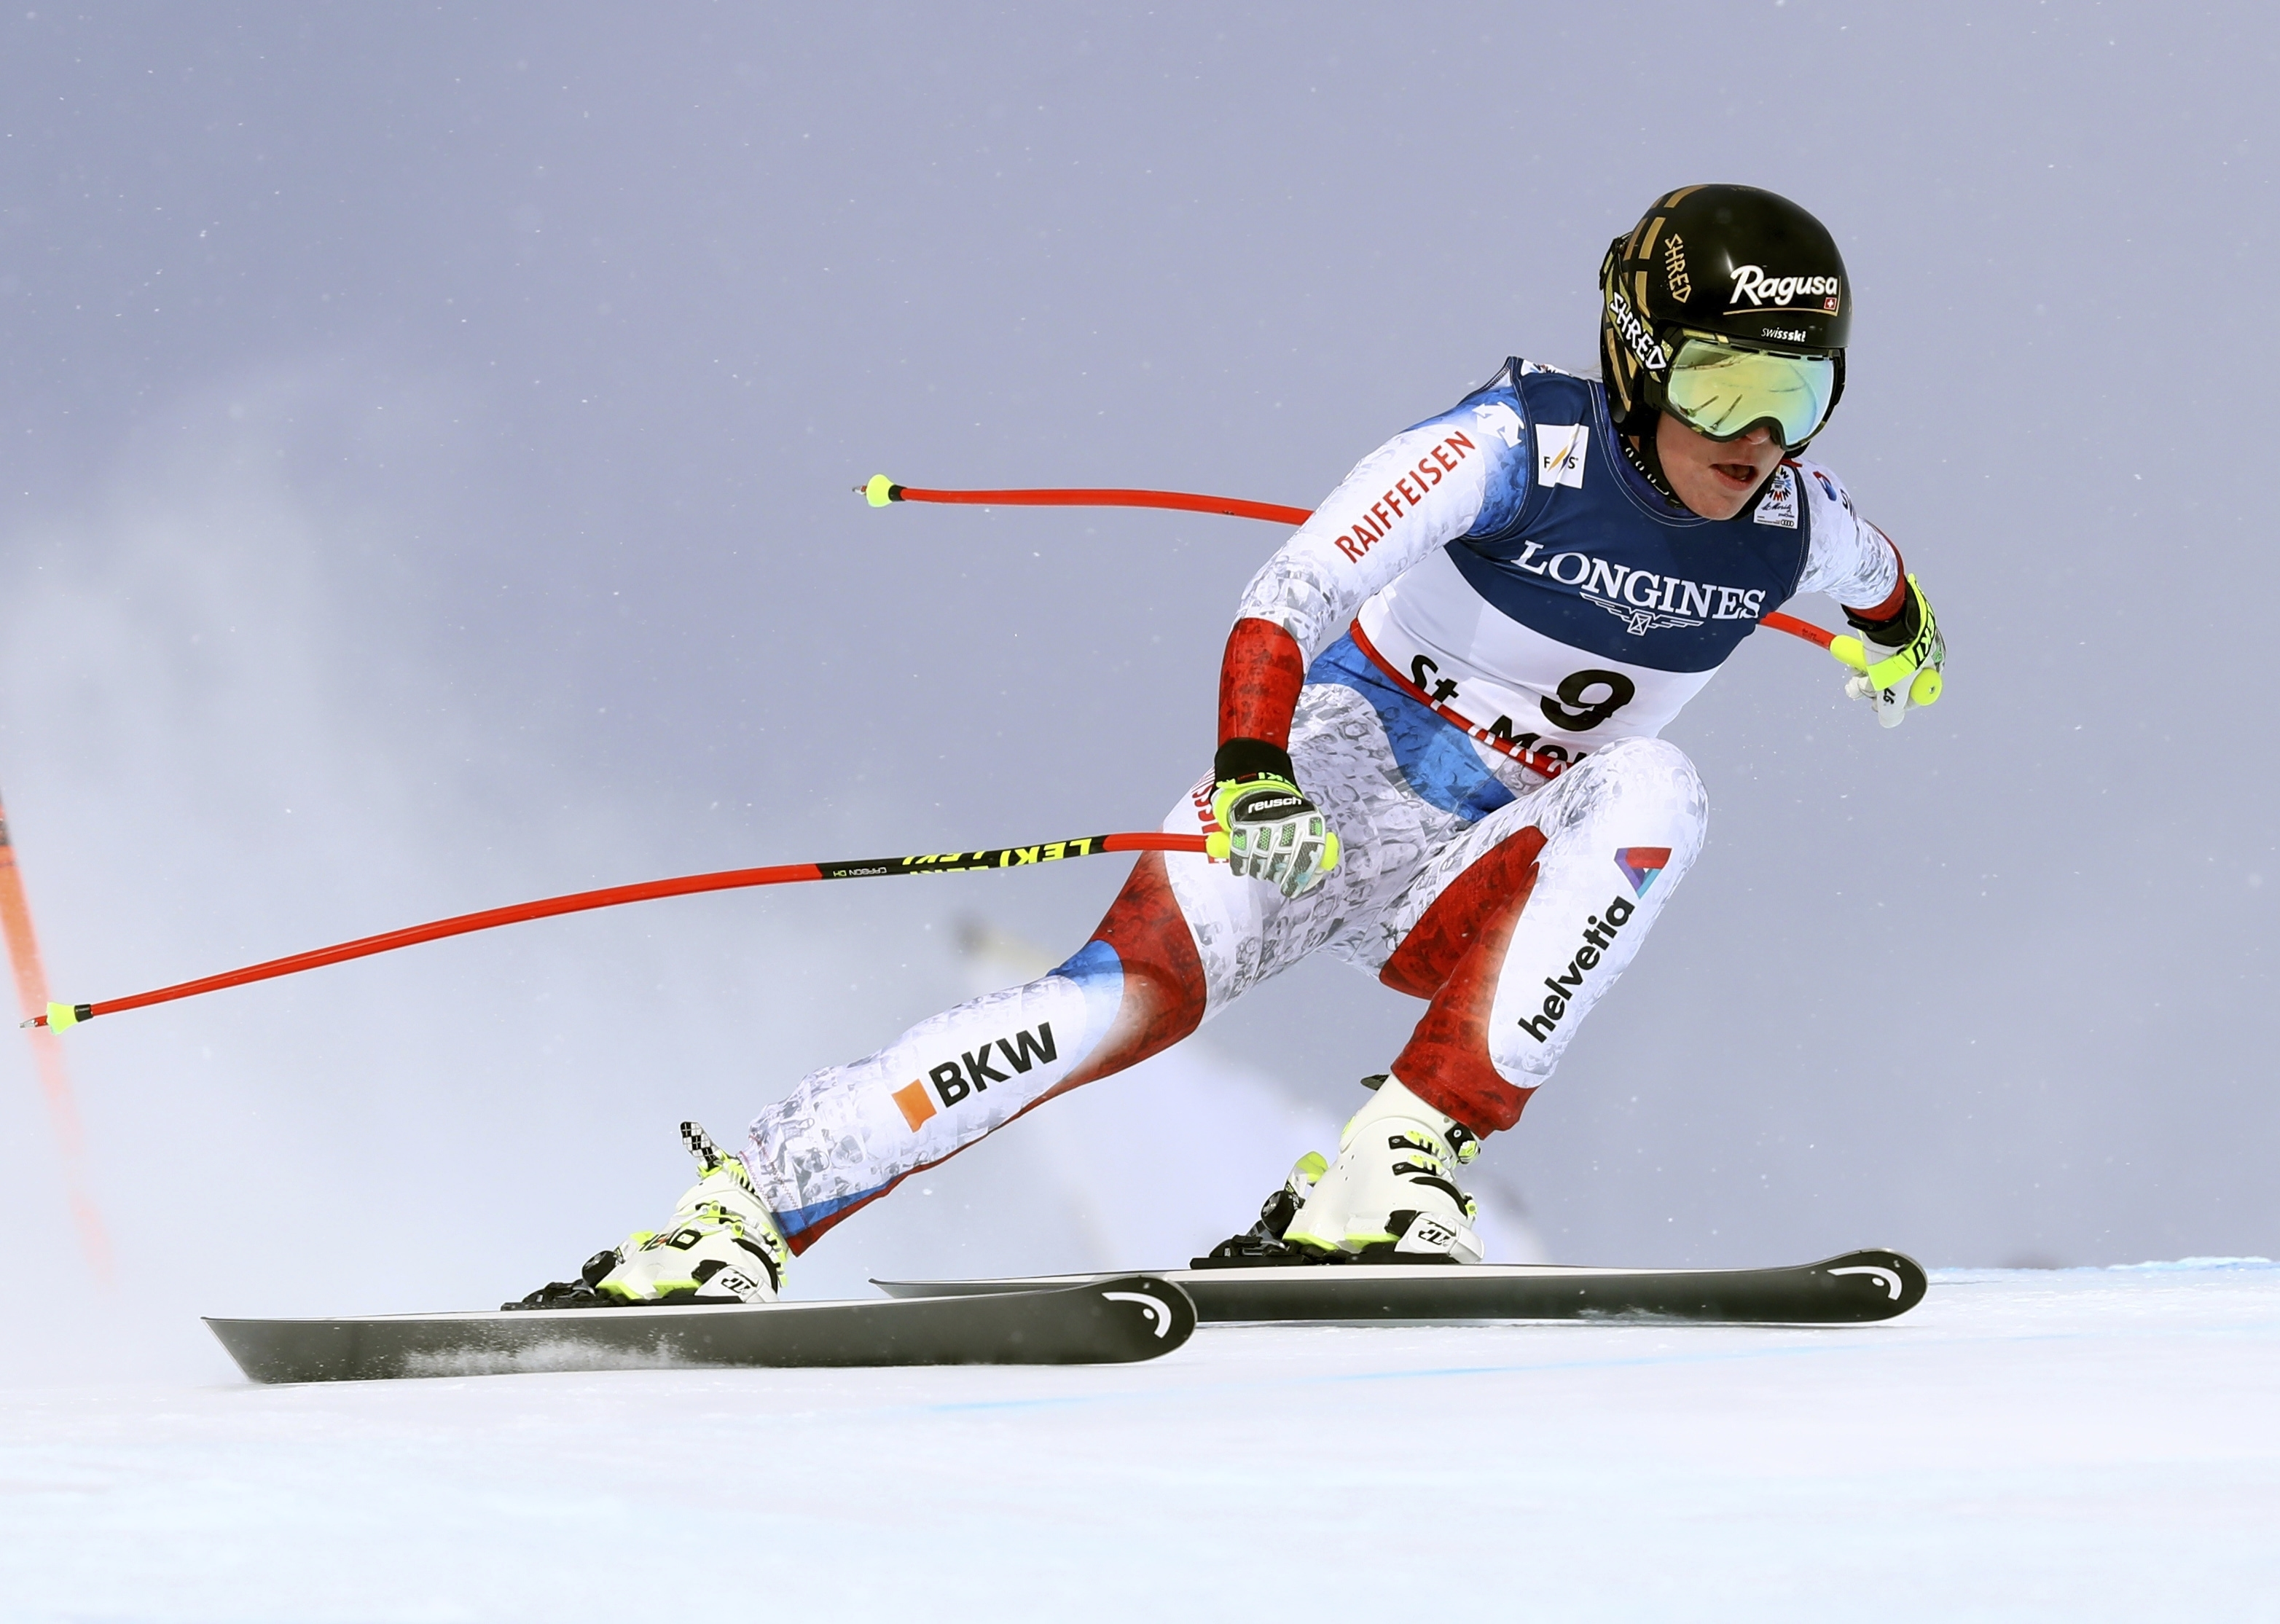 Switzerland's Lara Gut speeds down the course during a women's combined event, at the alpine ski World Championships, in St. Moritz, Switzerland, Friday, Feb. 10, 2017. (AP Photo/Alessandro Trovati)